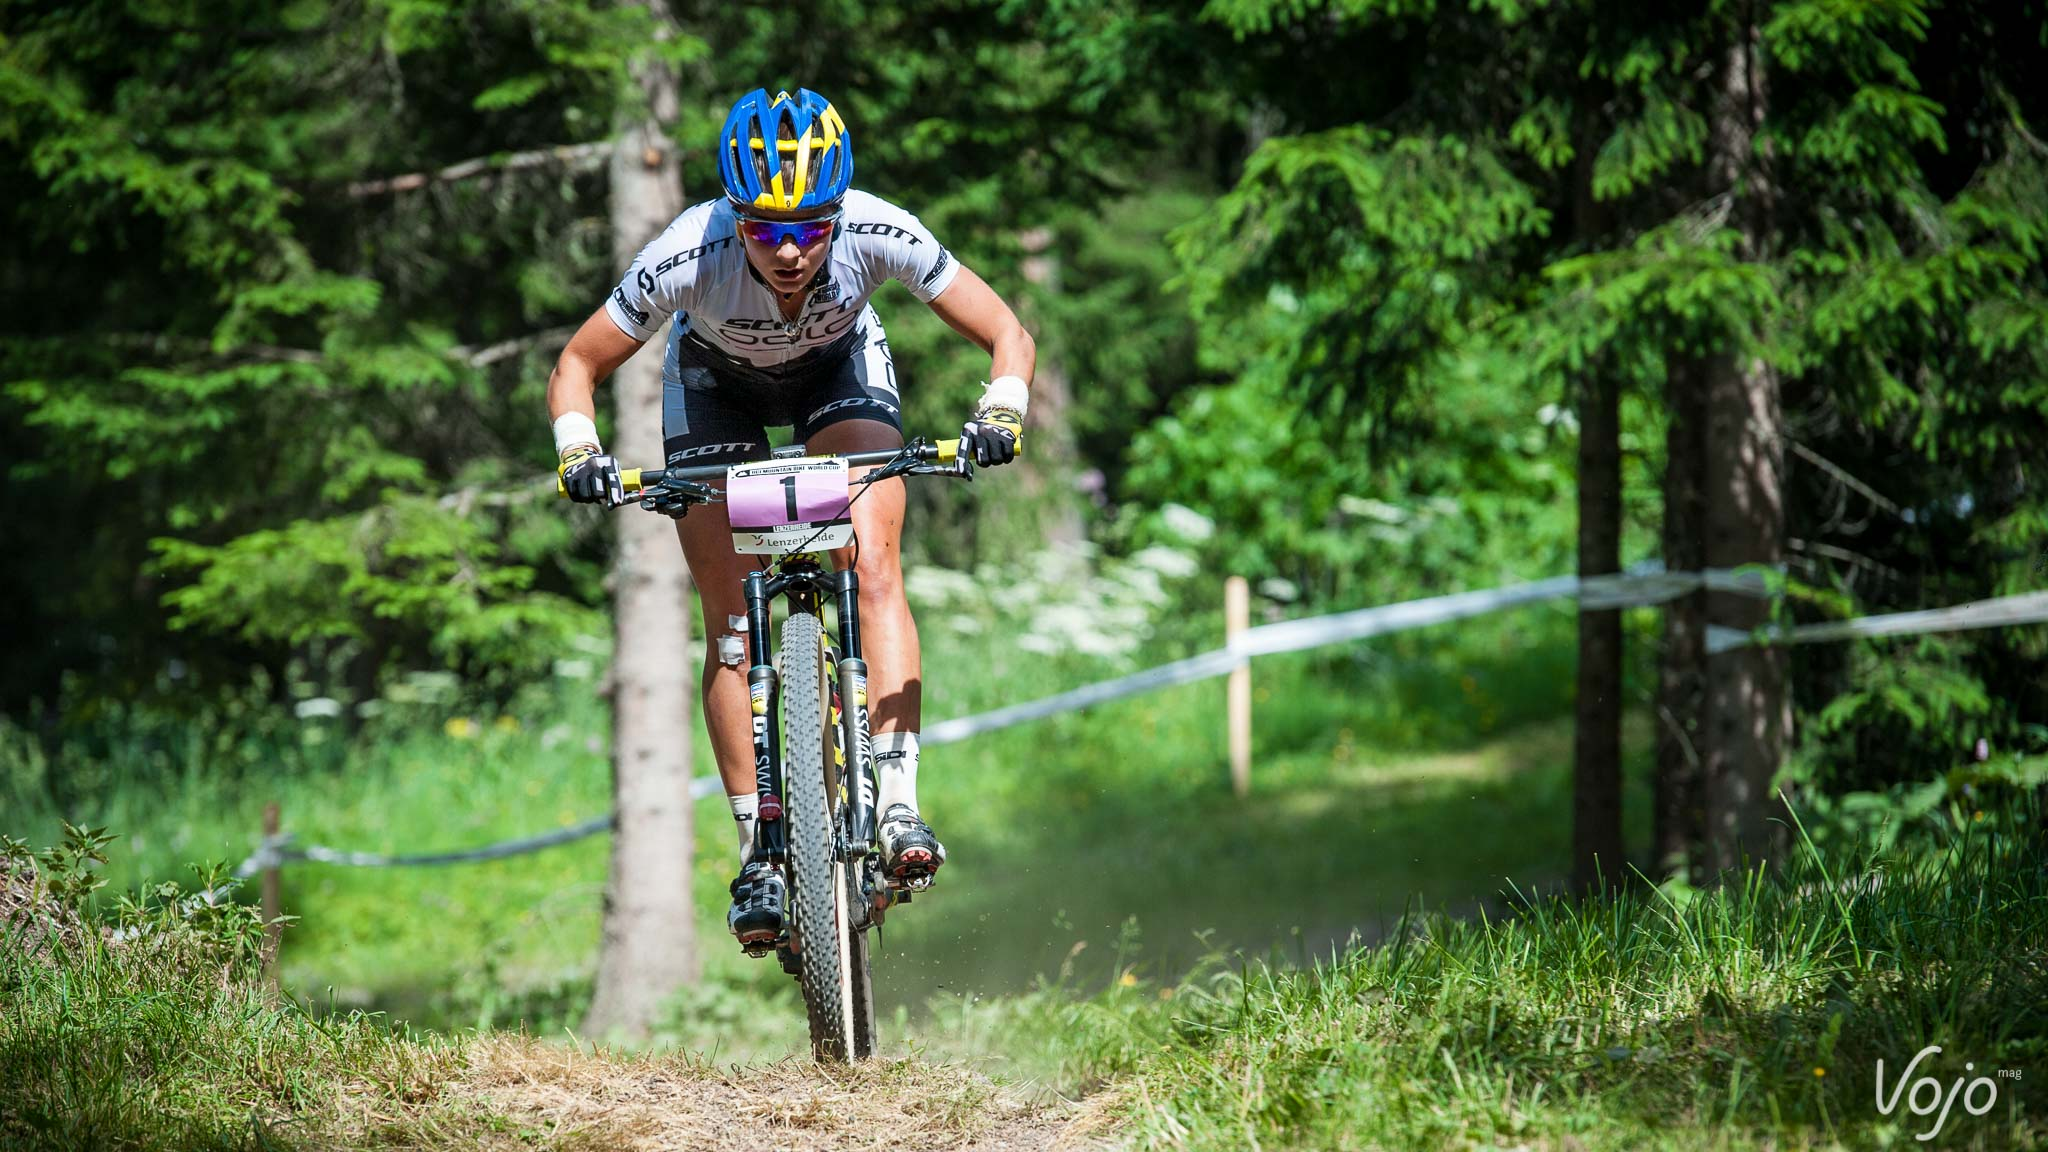 World_Cup_Lenzerheide_Copyright_VojoMag-1-2